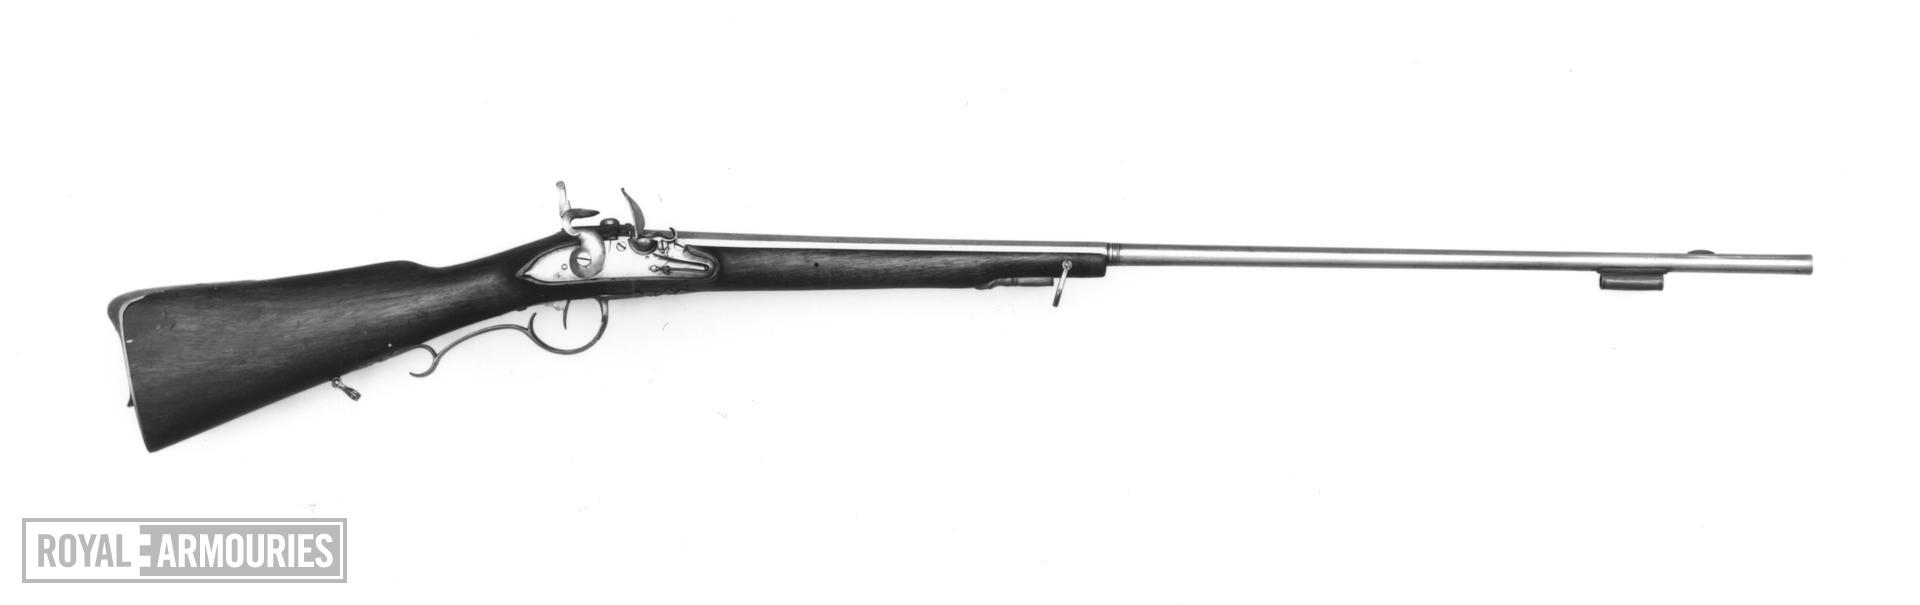 Airgun Air gun made to resemble a flintlock